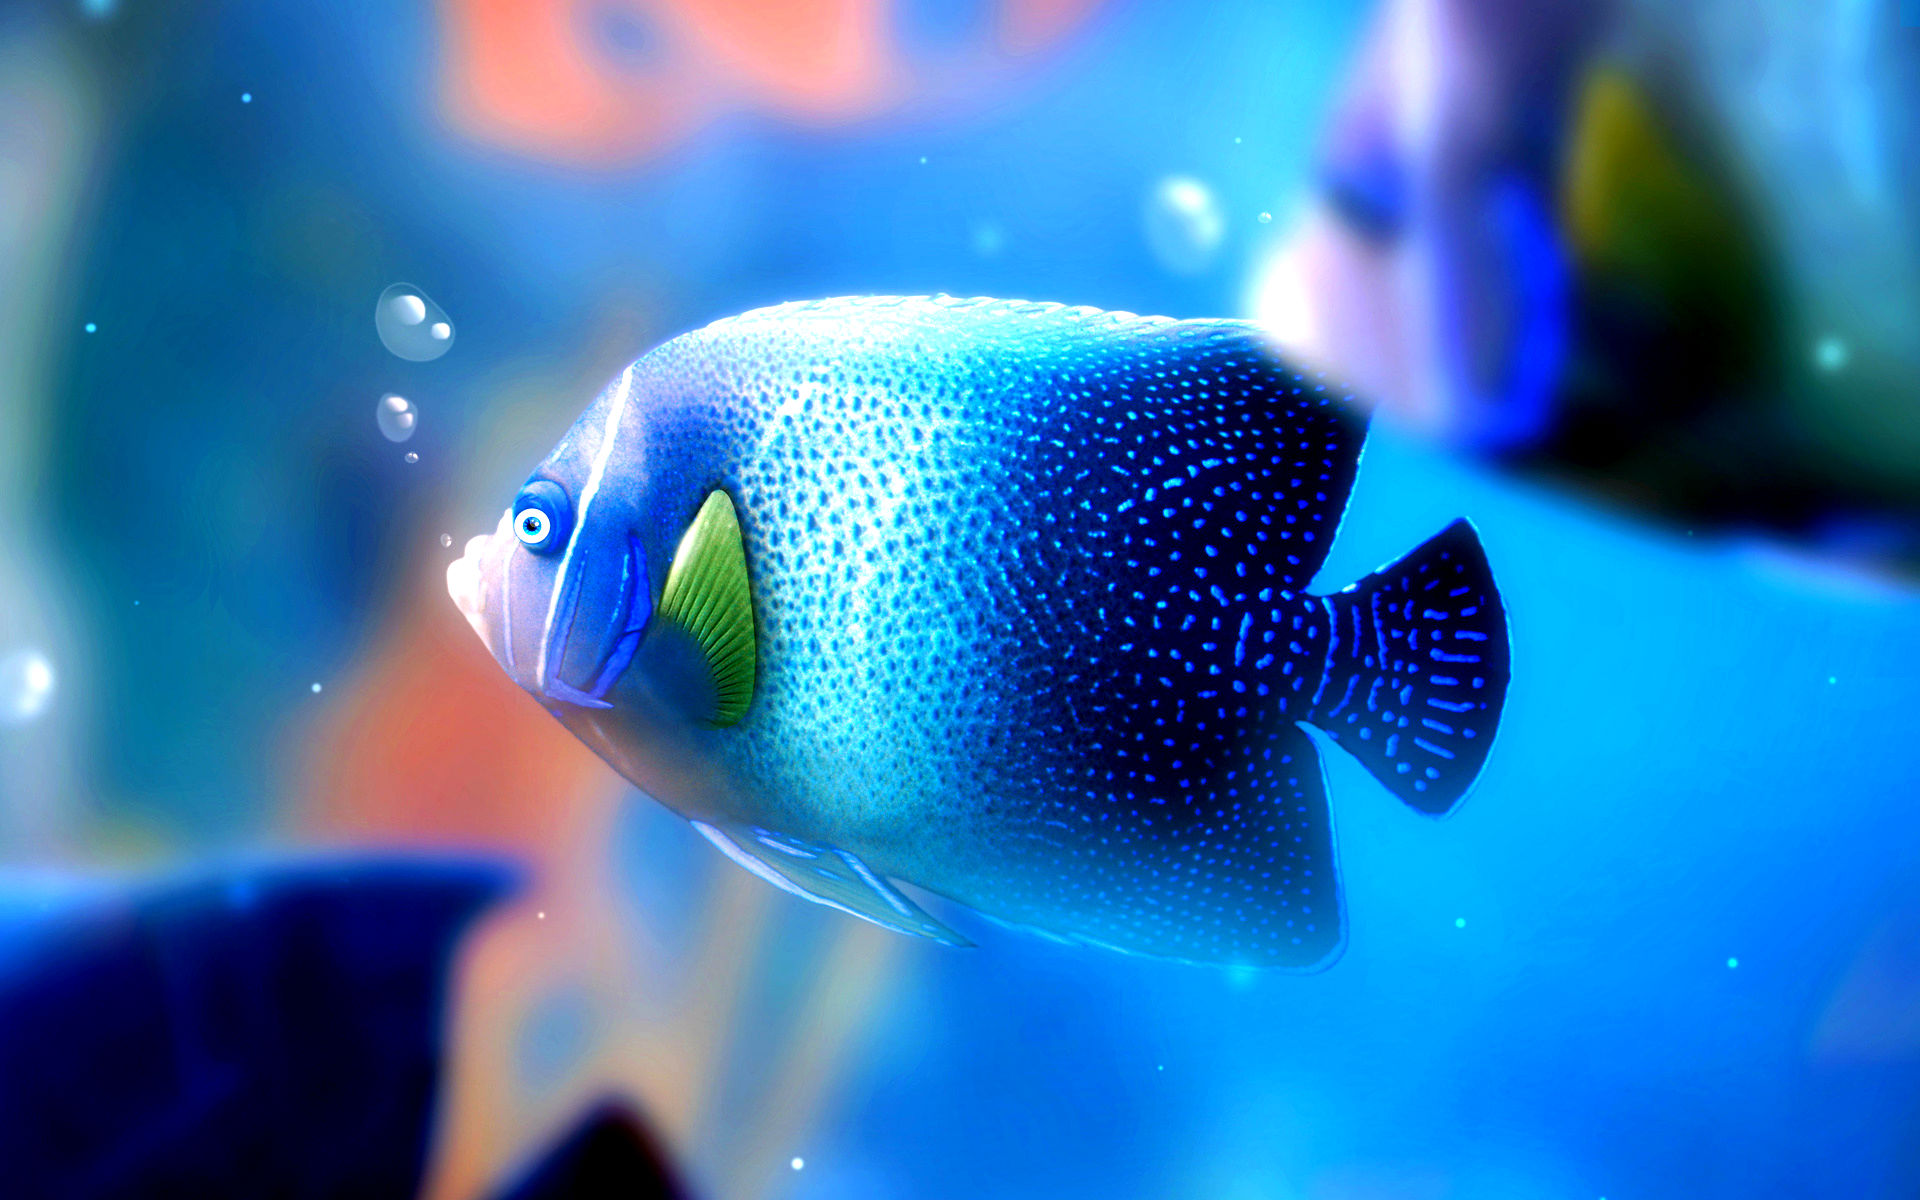 Fish wallpapers best wallpapers for Wallpaper fish in water